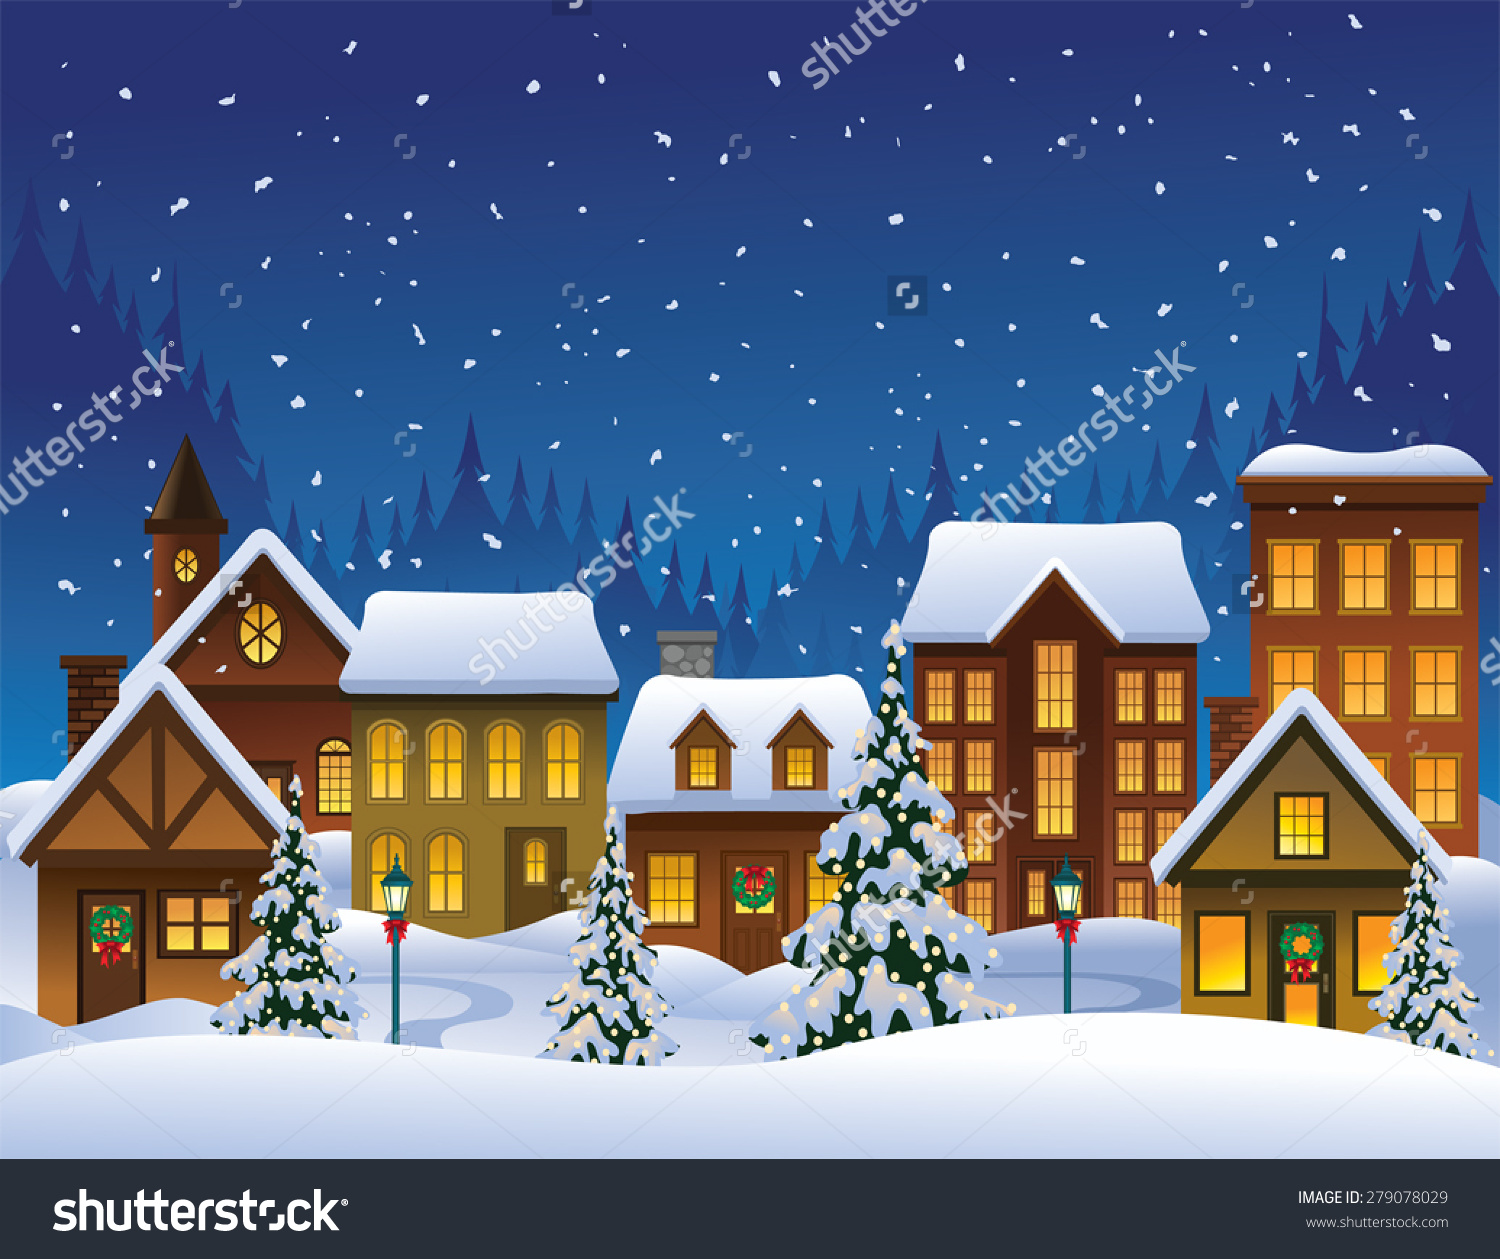 Christmas Village Stock Vector 279078029.